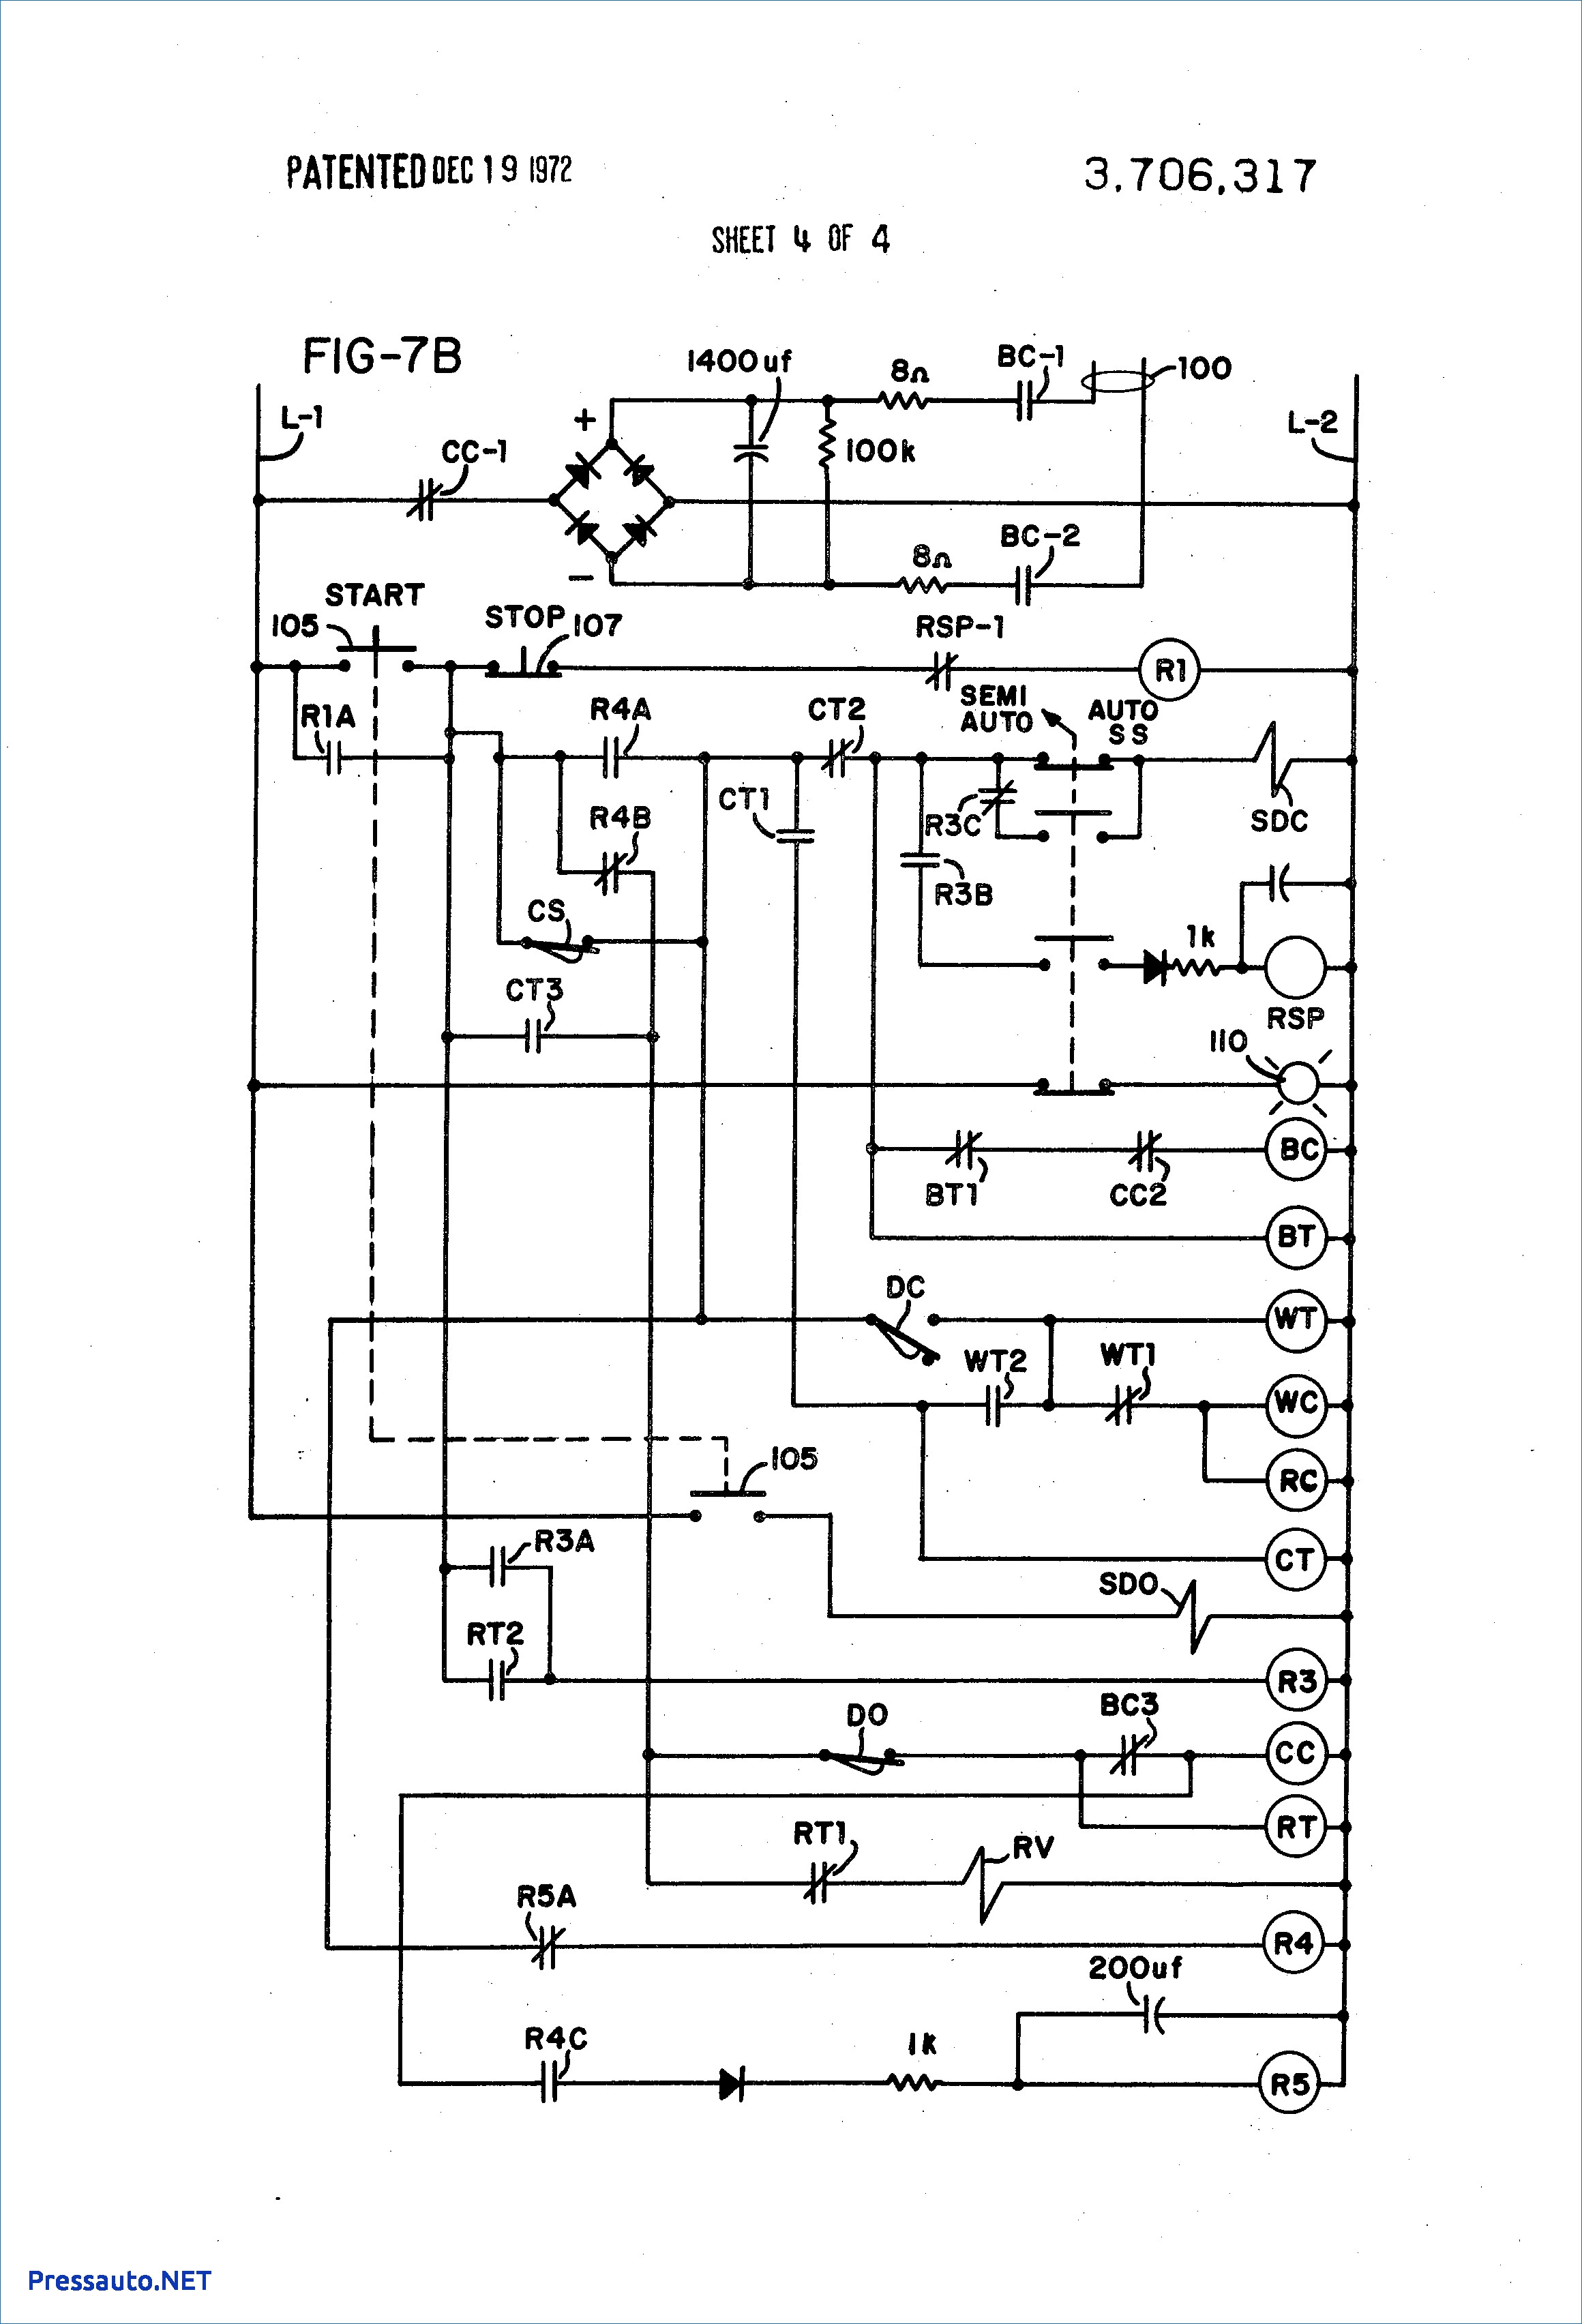 old hot water pressure washer wiring diagrams hotsy    pressure       washer       wiring       diagram    download  hotsy    pressure       washer       wiring       diagram    download